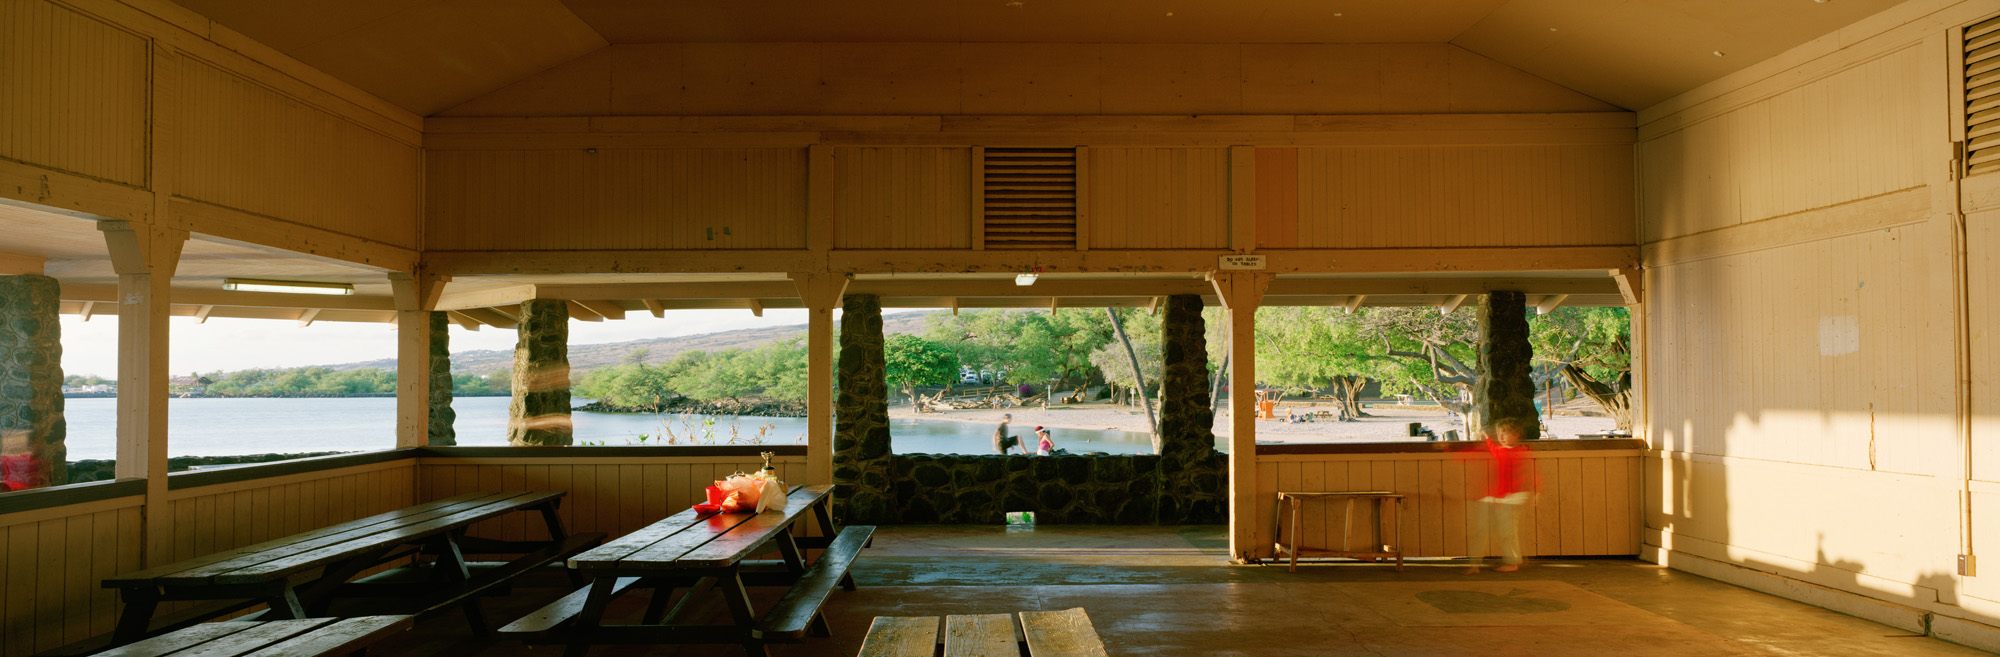 Spencer Obake, Kukui Point, Hawaii, 2007